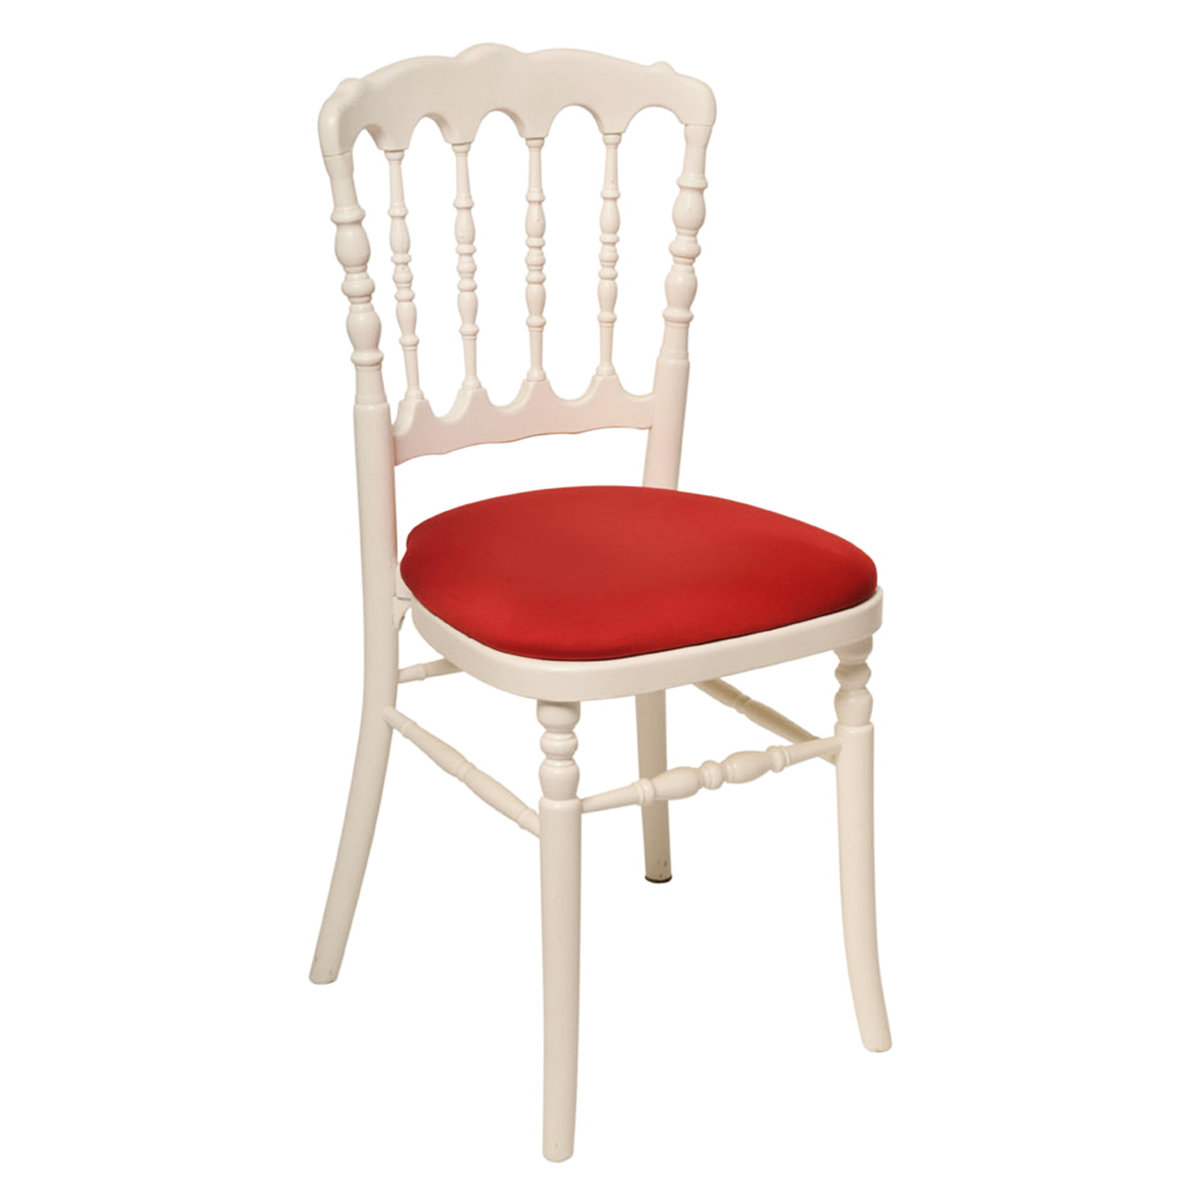 Chaise napoléon blanche assise rouge